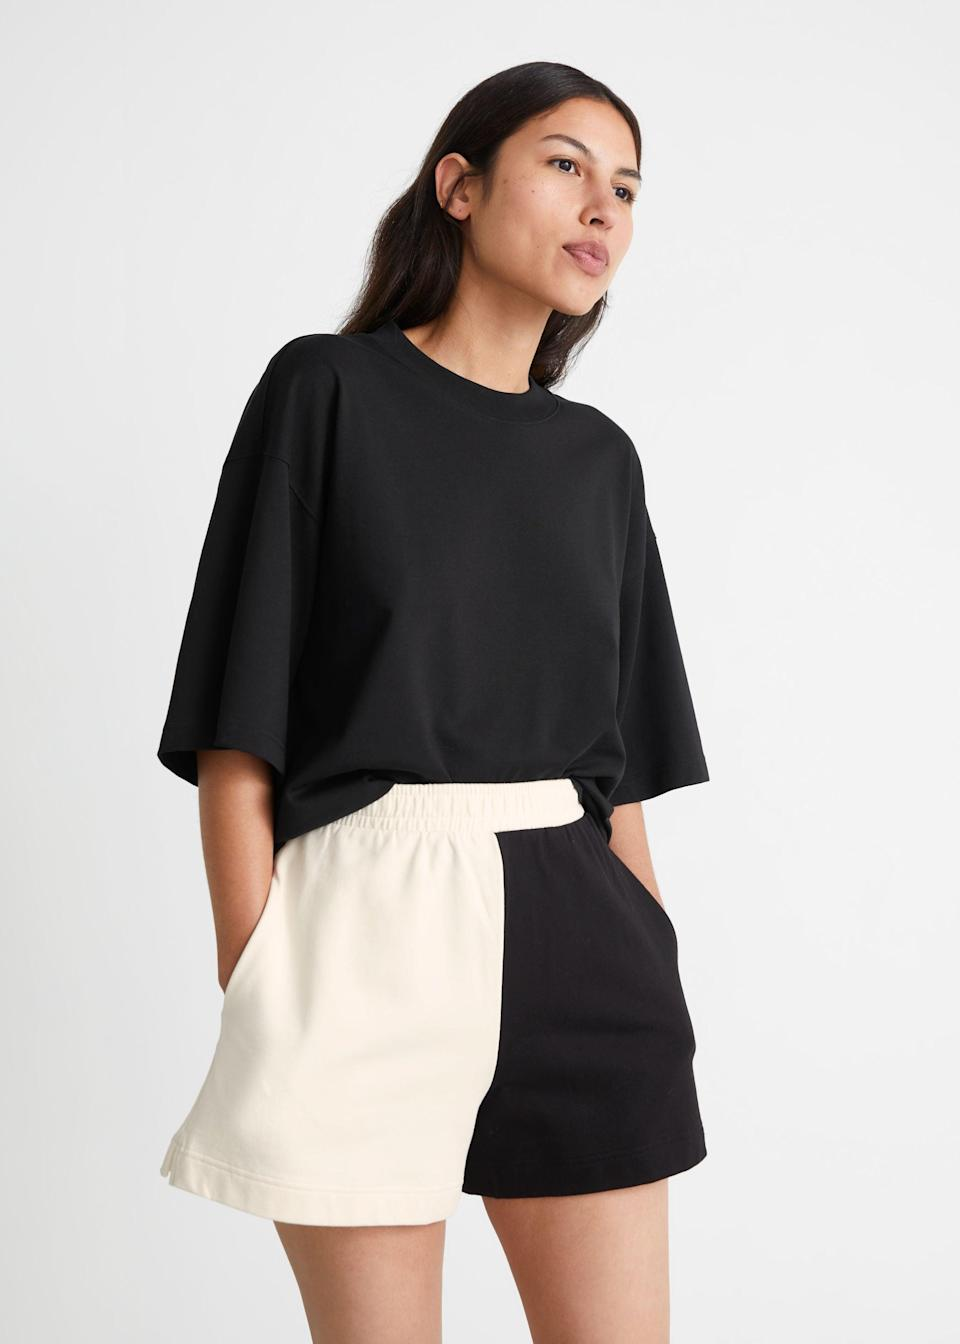 """I'm not much of a skirt person but shorts I can definitely do. I love this laid-back and floaty, two-tone pair, which I'd team with an oversized tee, lots of gold jewellery and chunky sandals.<br><br><strong>& Other Stories</strong> Two-Tone Terry Shorts, $, available at <a href=""""https://www.stories.com/en_gbp/clothing/shorts/product.two-tone-terry-shorts-black.1011739001.html"""" rel=""""nofollow noopener"""" target=""""_blank"""" data-ylk=""""slk:& Other Stories"""" class=""""link rapid-noclick-resp"""">& Other Stories</a>"""